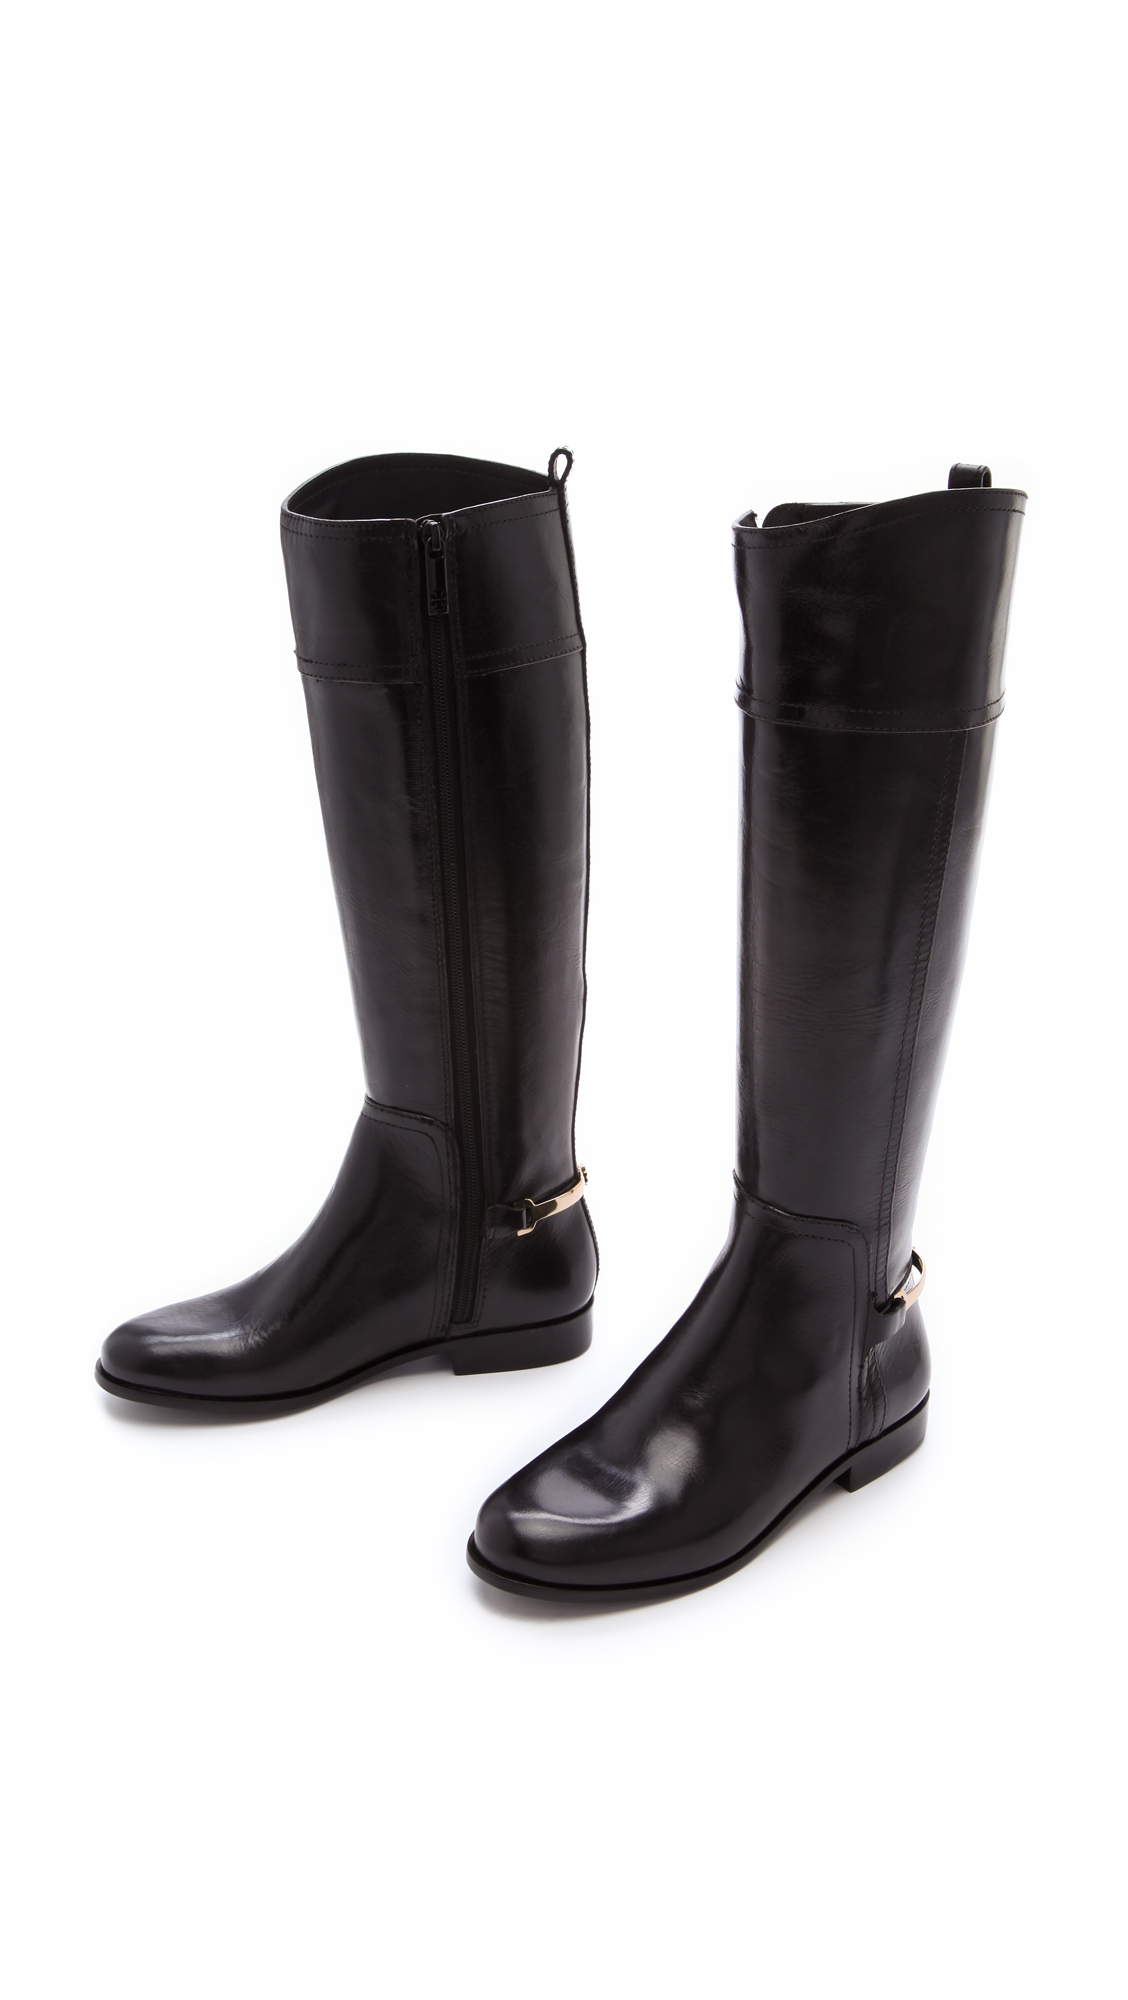 ca85cecfa17a Tory Burch Jess Riding Boots | SHOPBOP